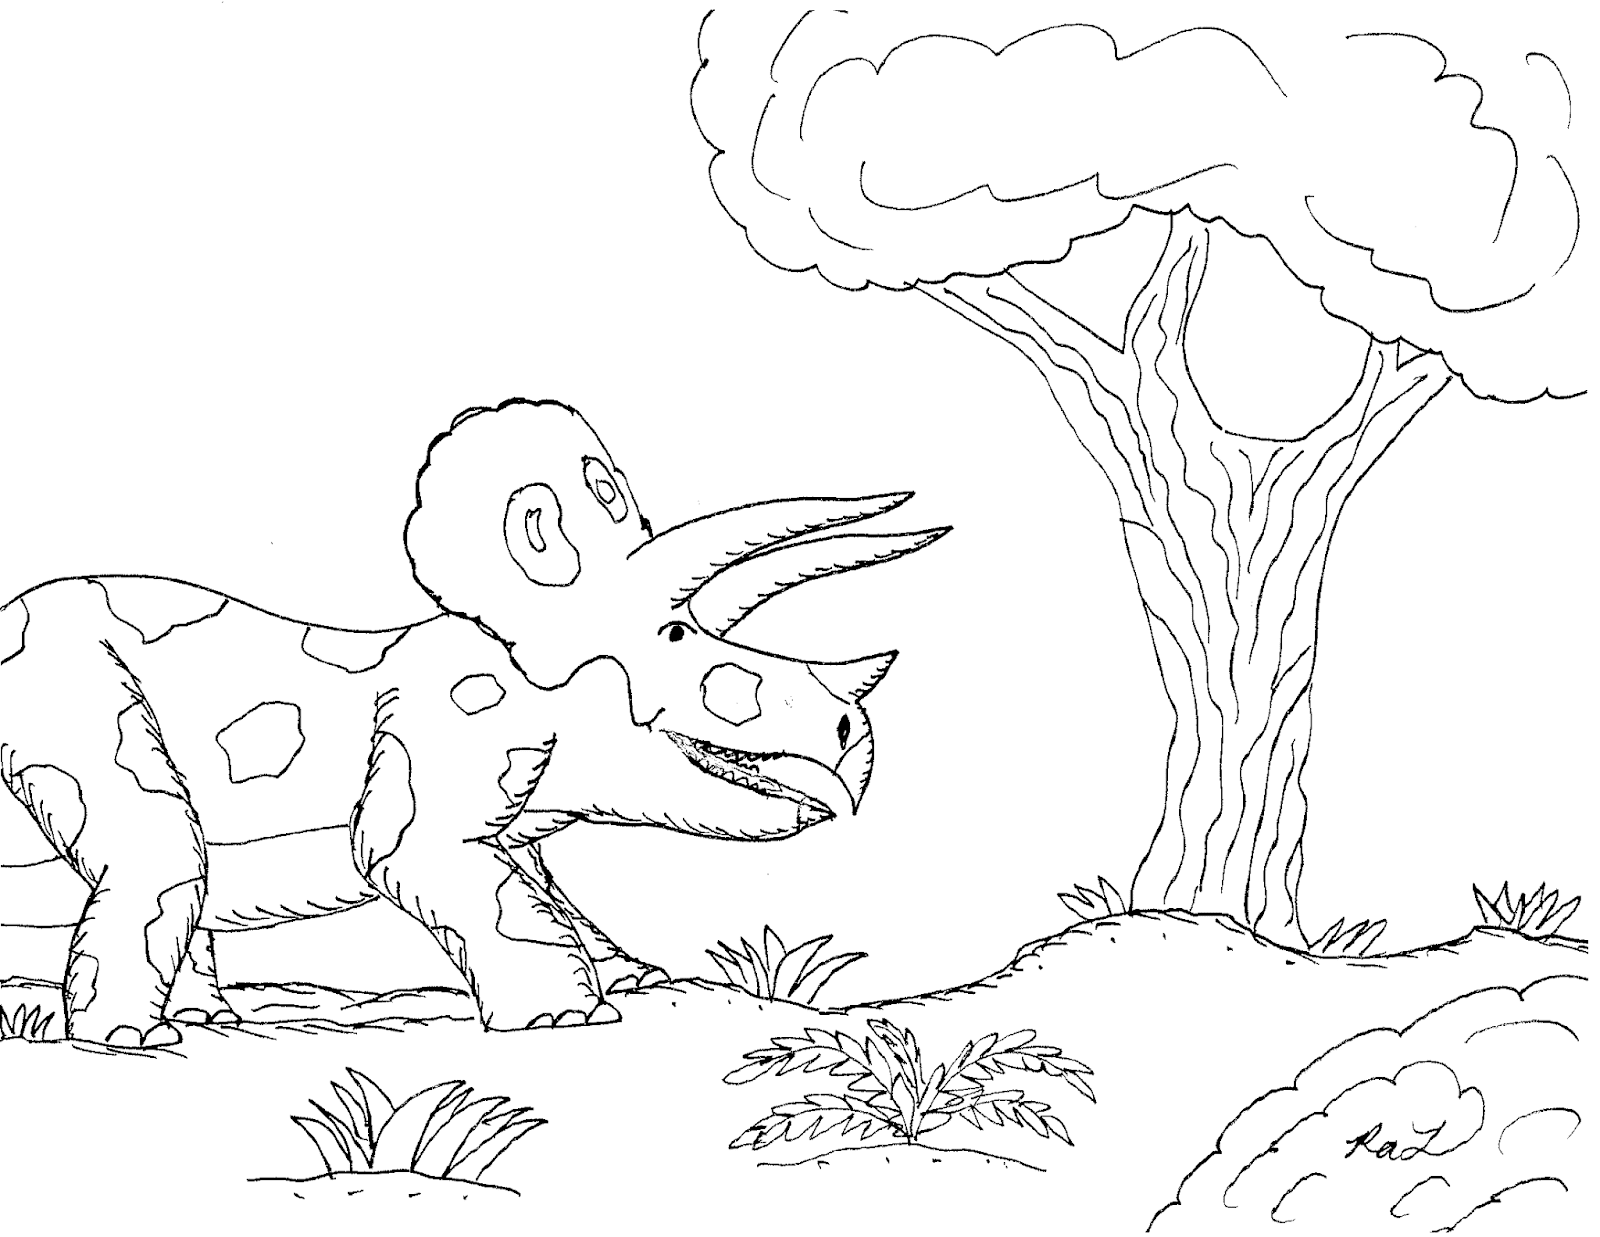 Robin S Great Coloring Pages Types Of Dinosaurs Worksheet